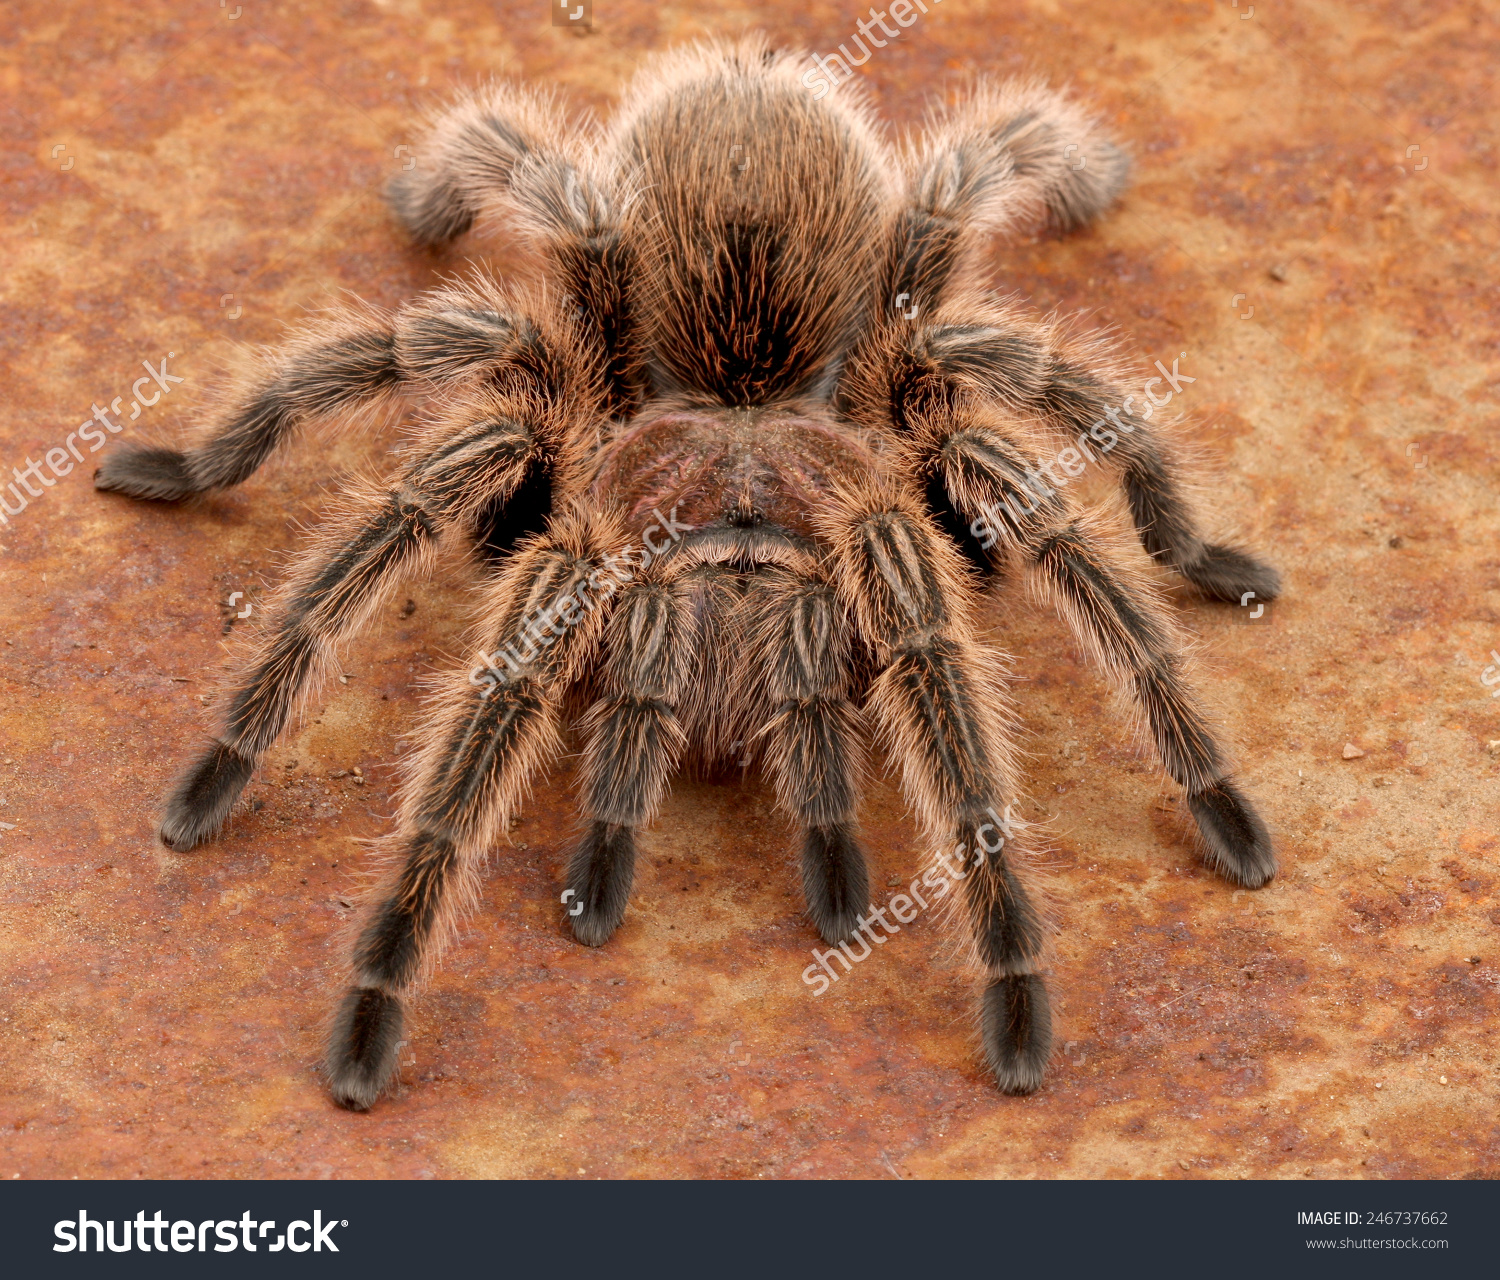 Chilean Rose Tarantula clipart #7, Download drawings